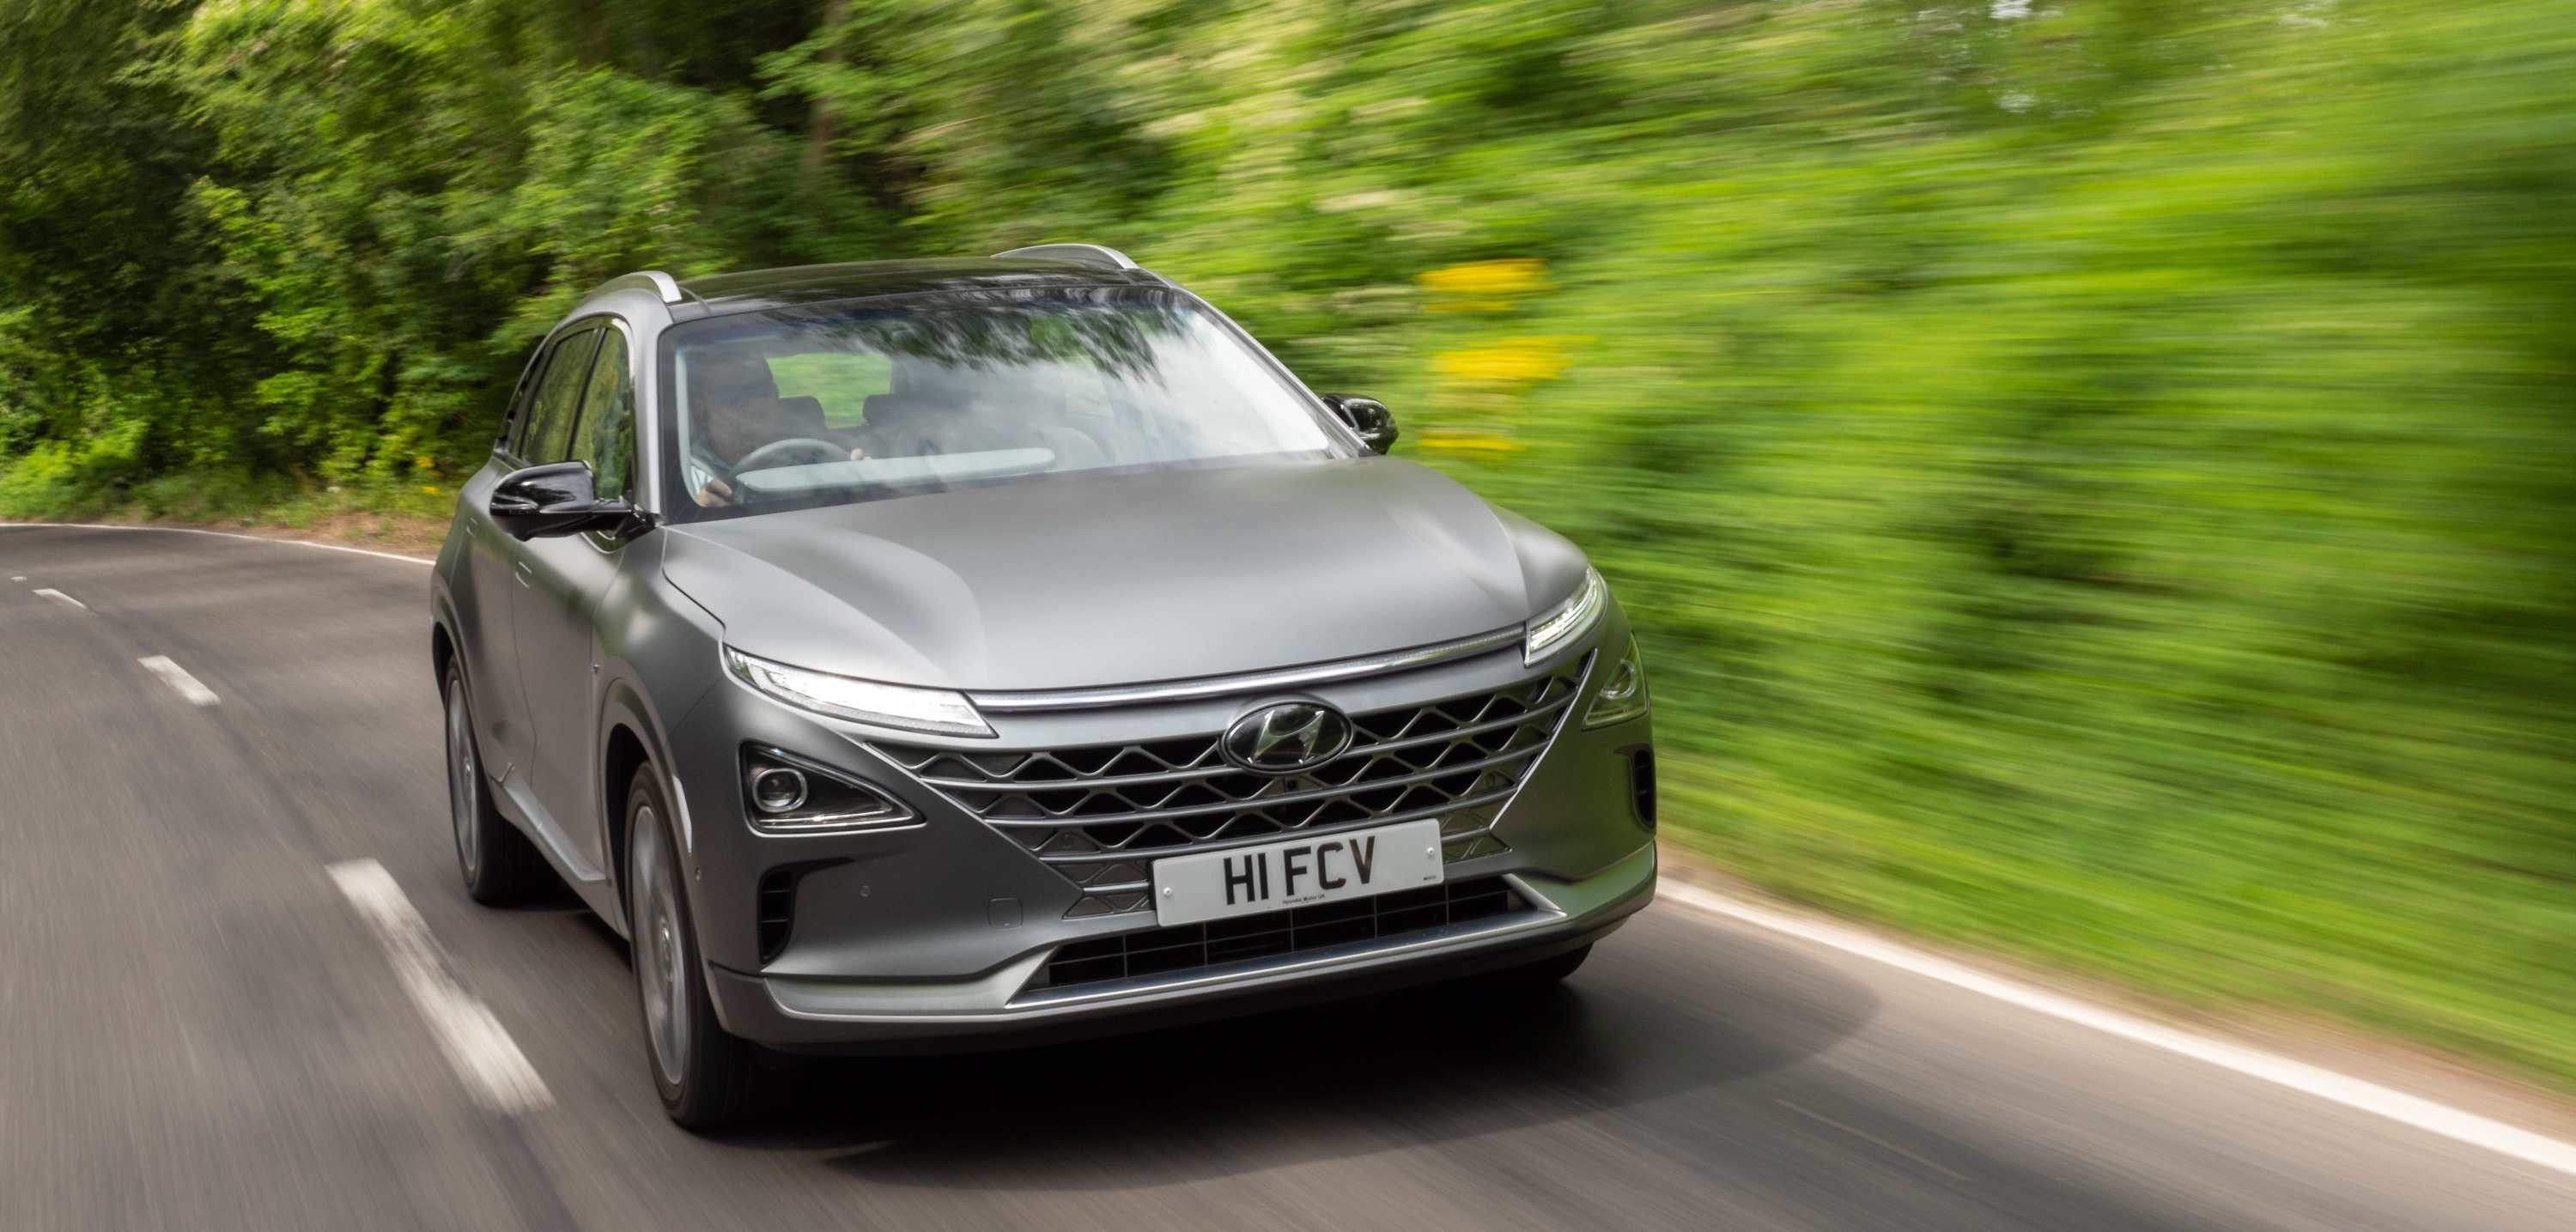 The future of hydrogen fuel cell vehicles - Electric & Hybrid